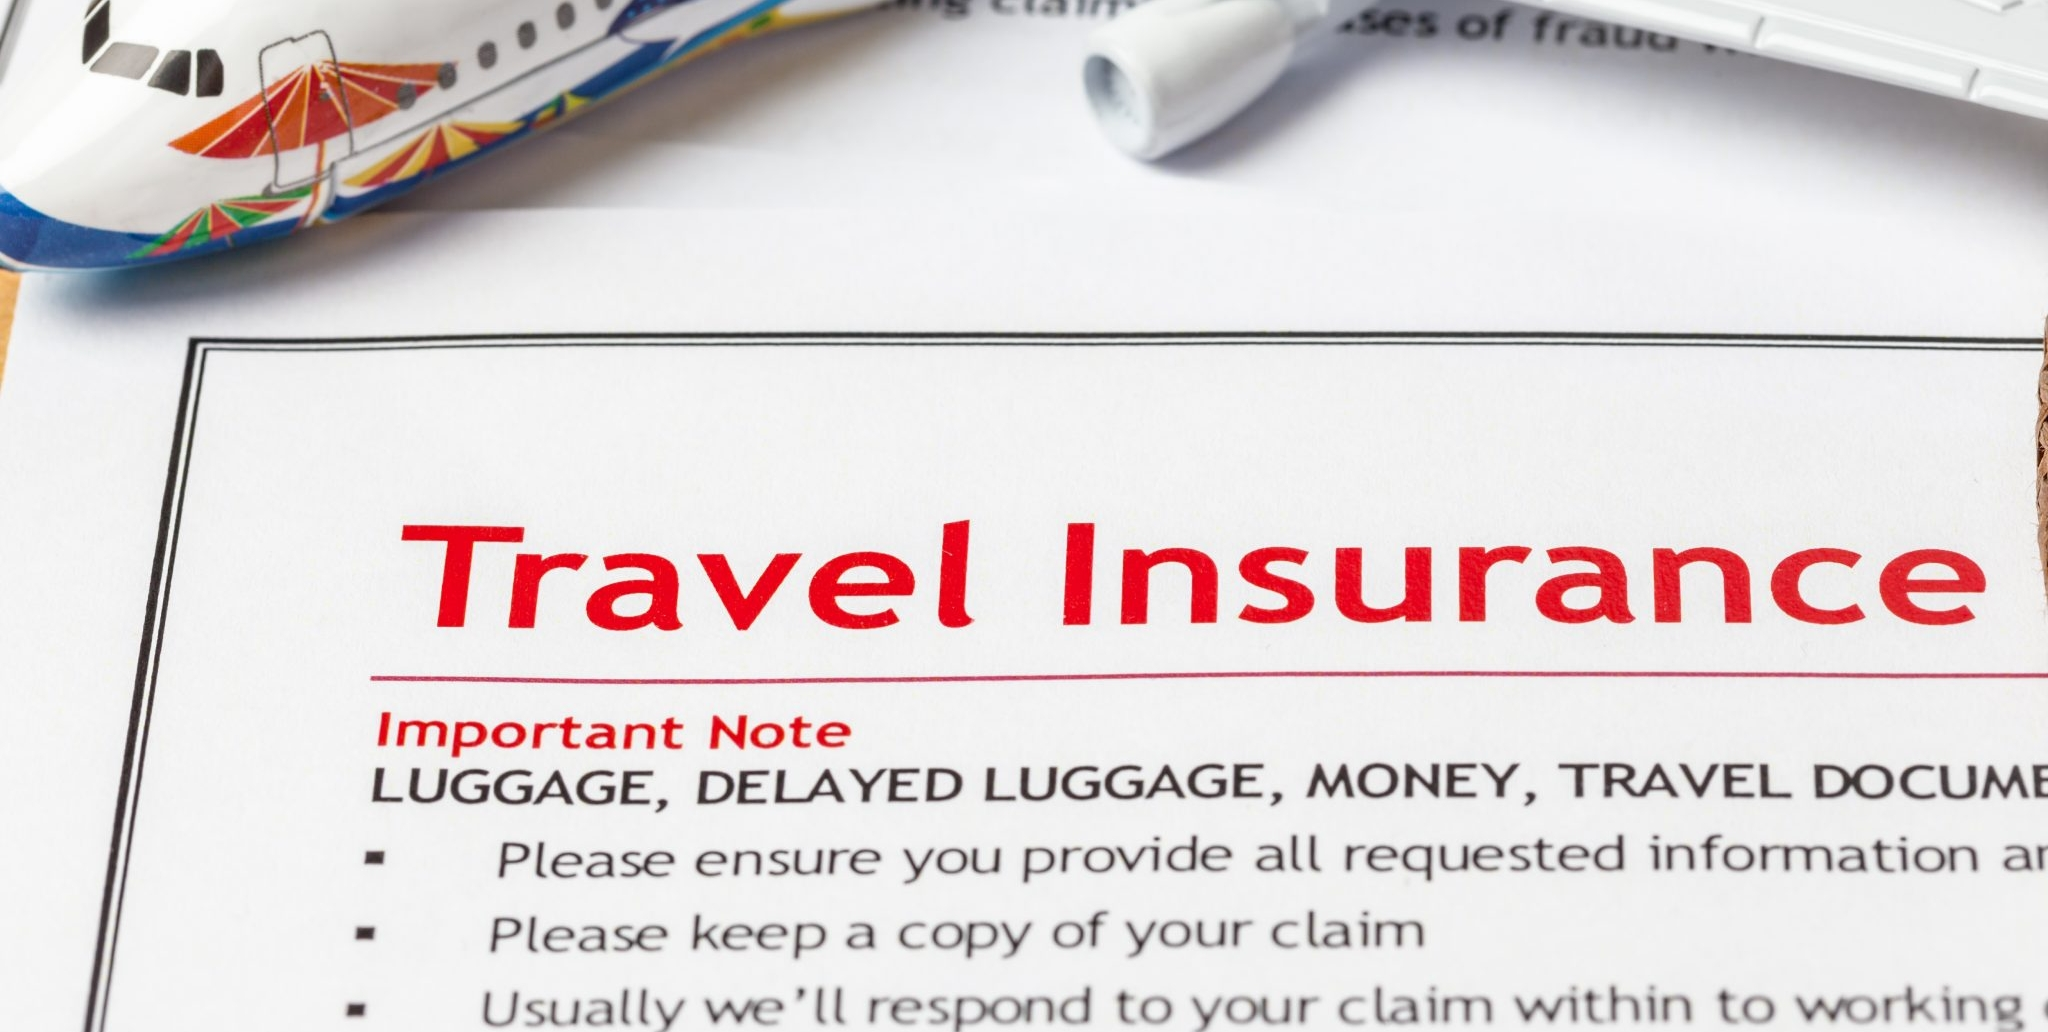 Travel Insurance for medical emergencies